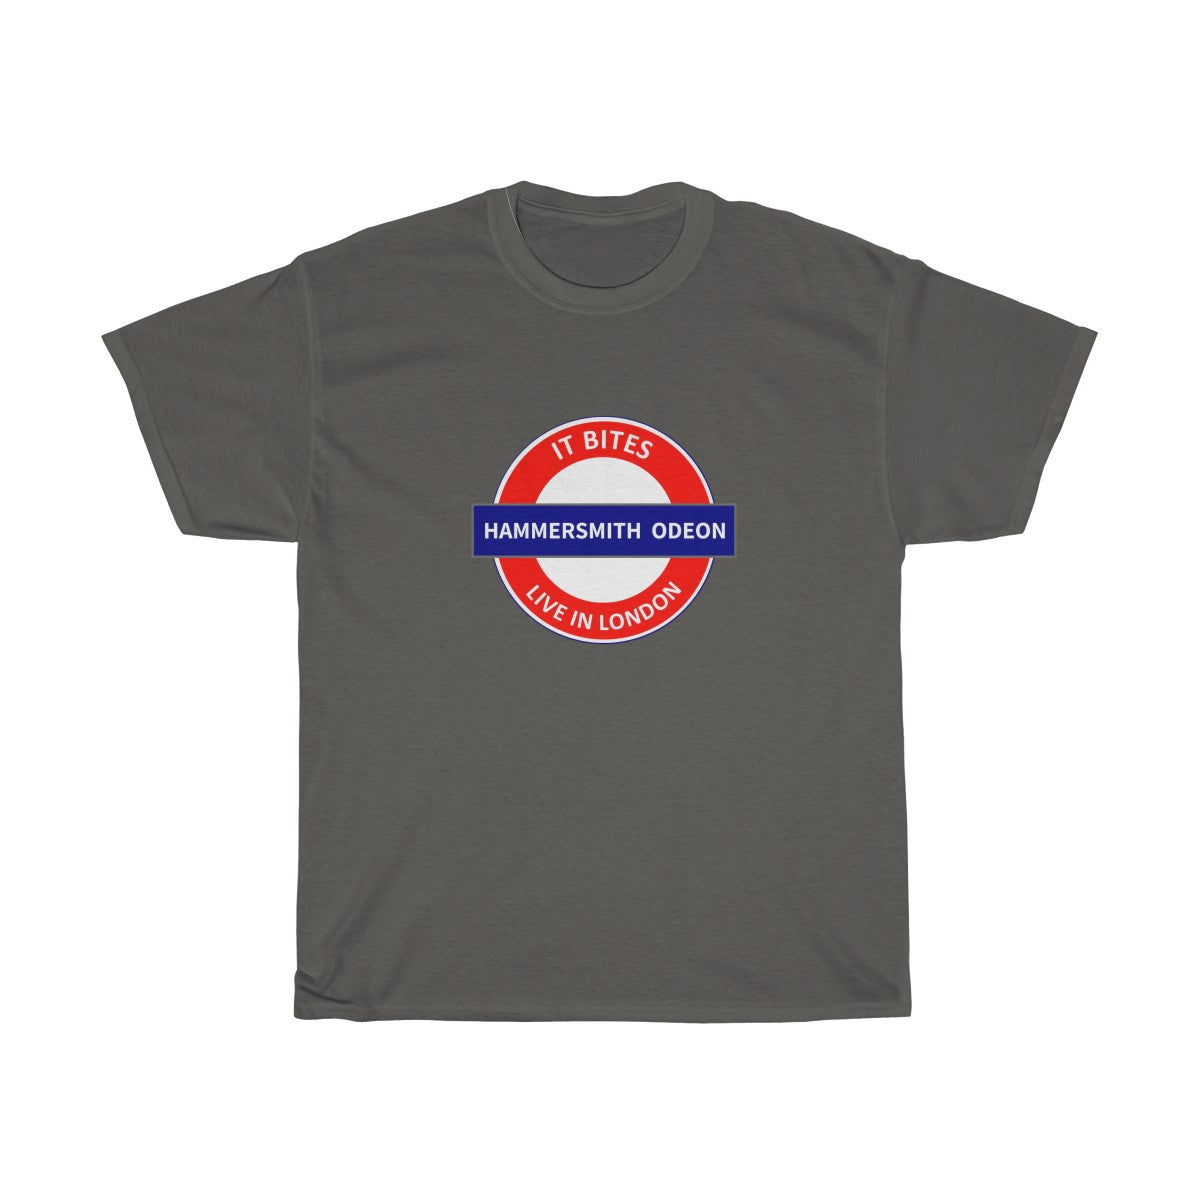 Live In London T-Shirt Hammersmith